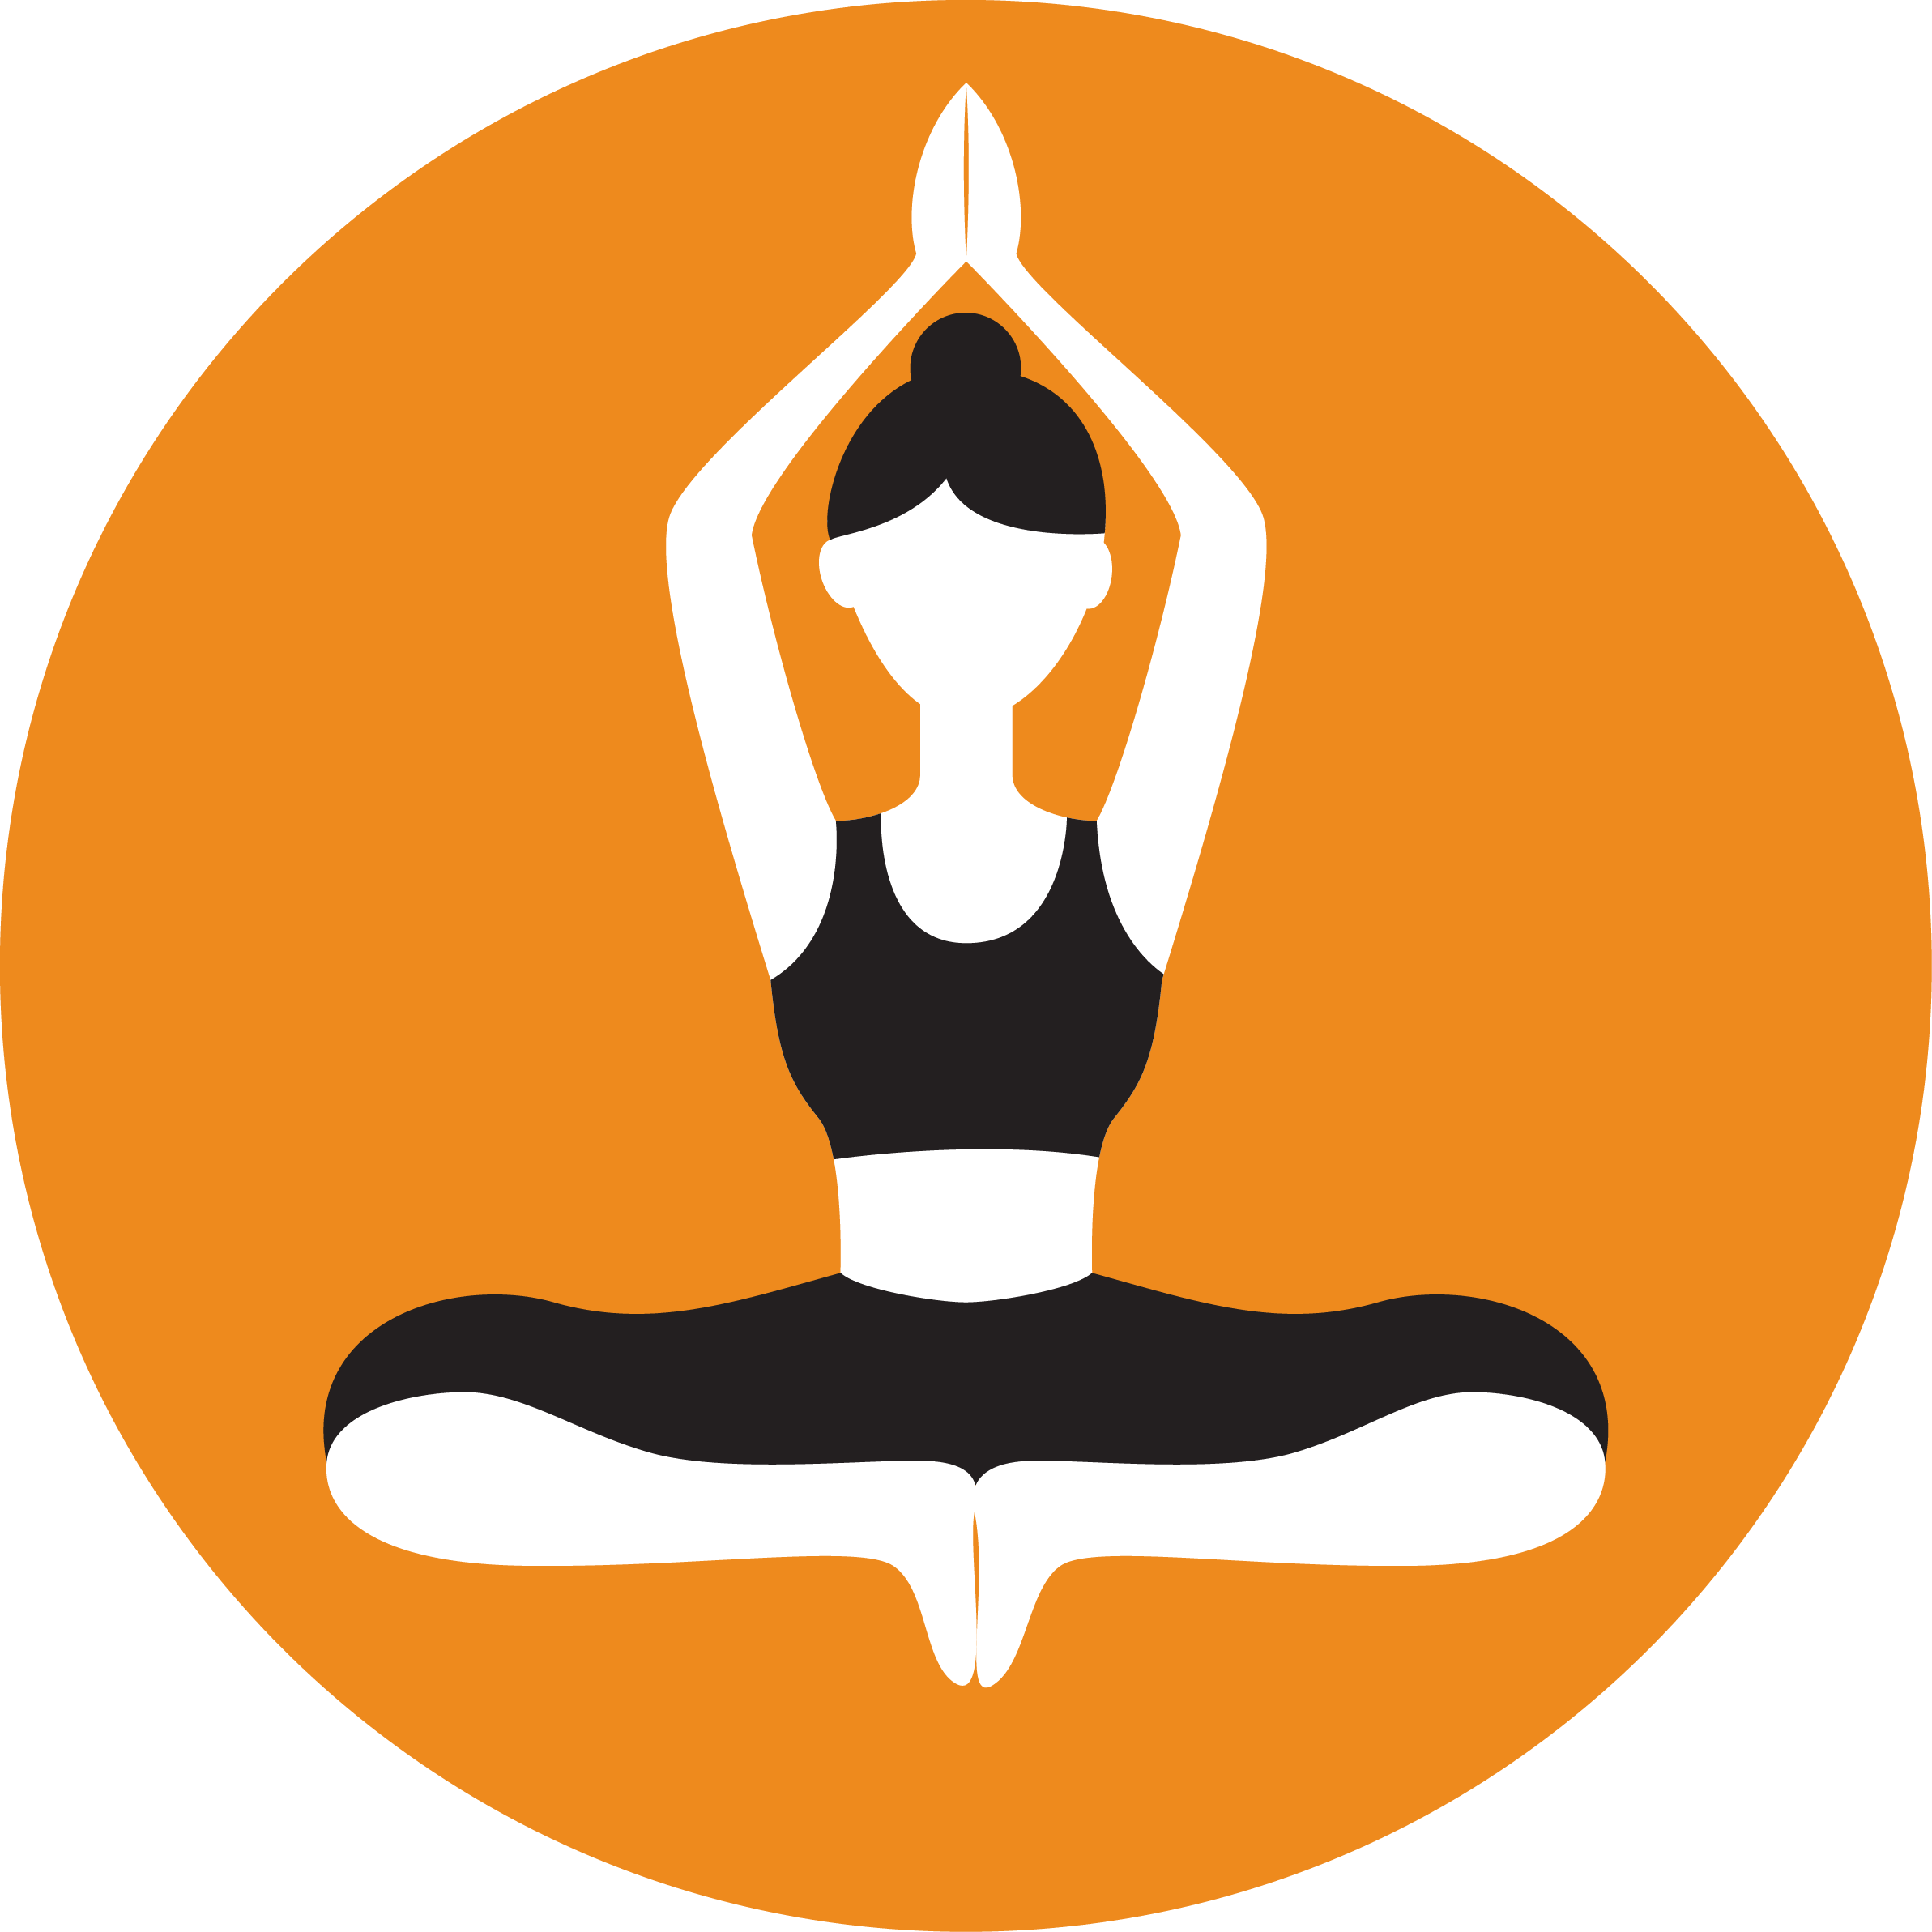 SJ_Icon_Private_Yoga_Orange